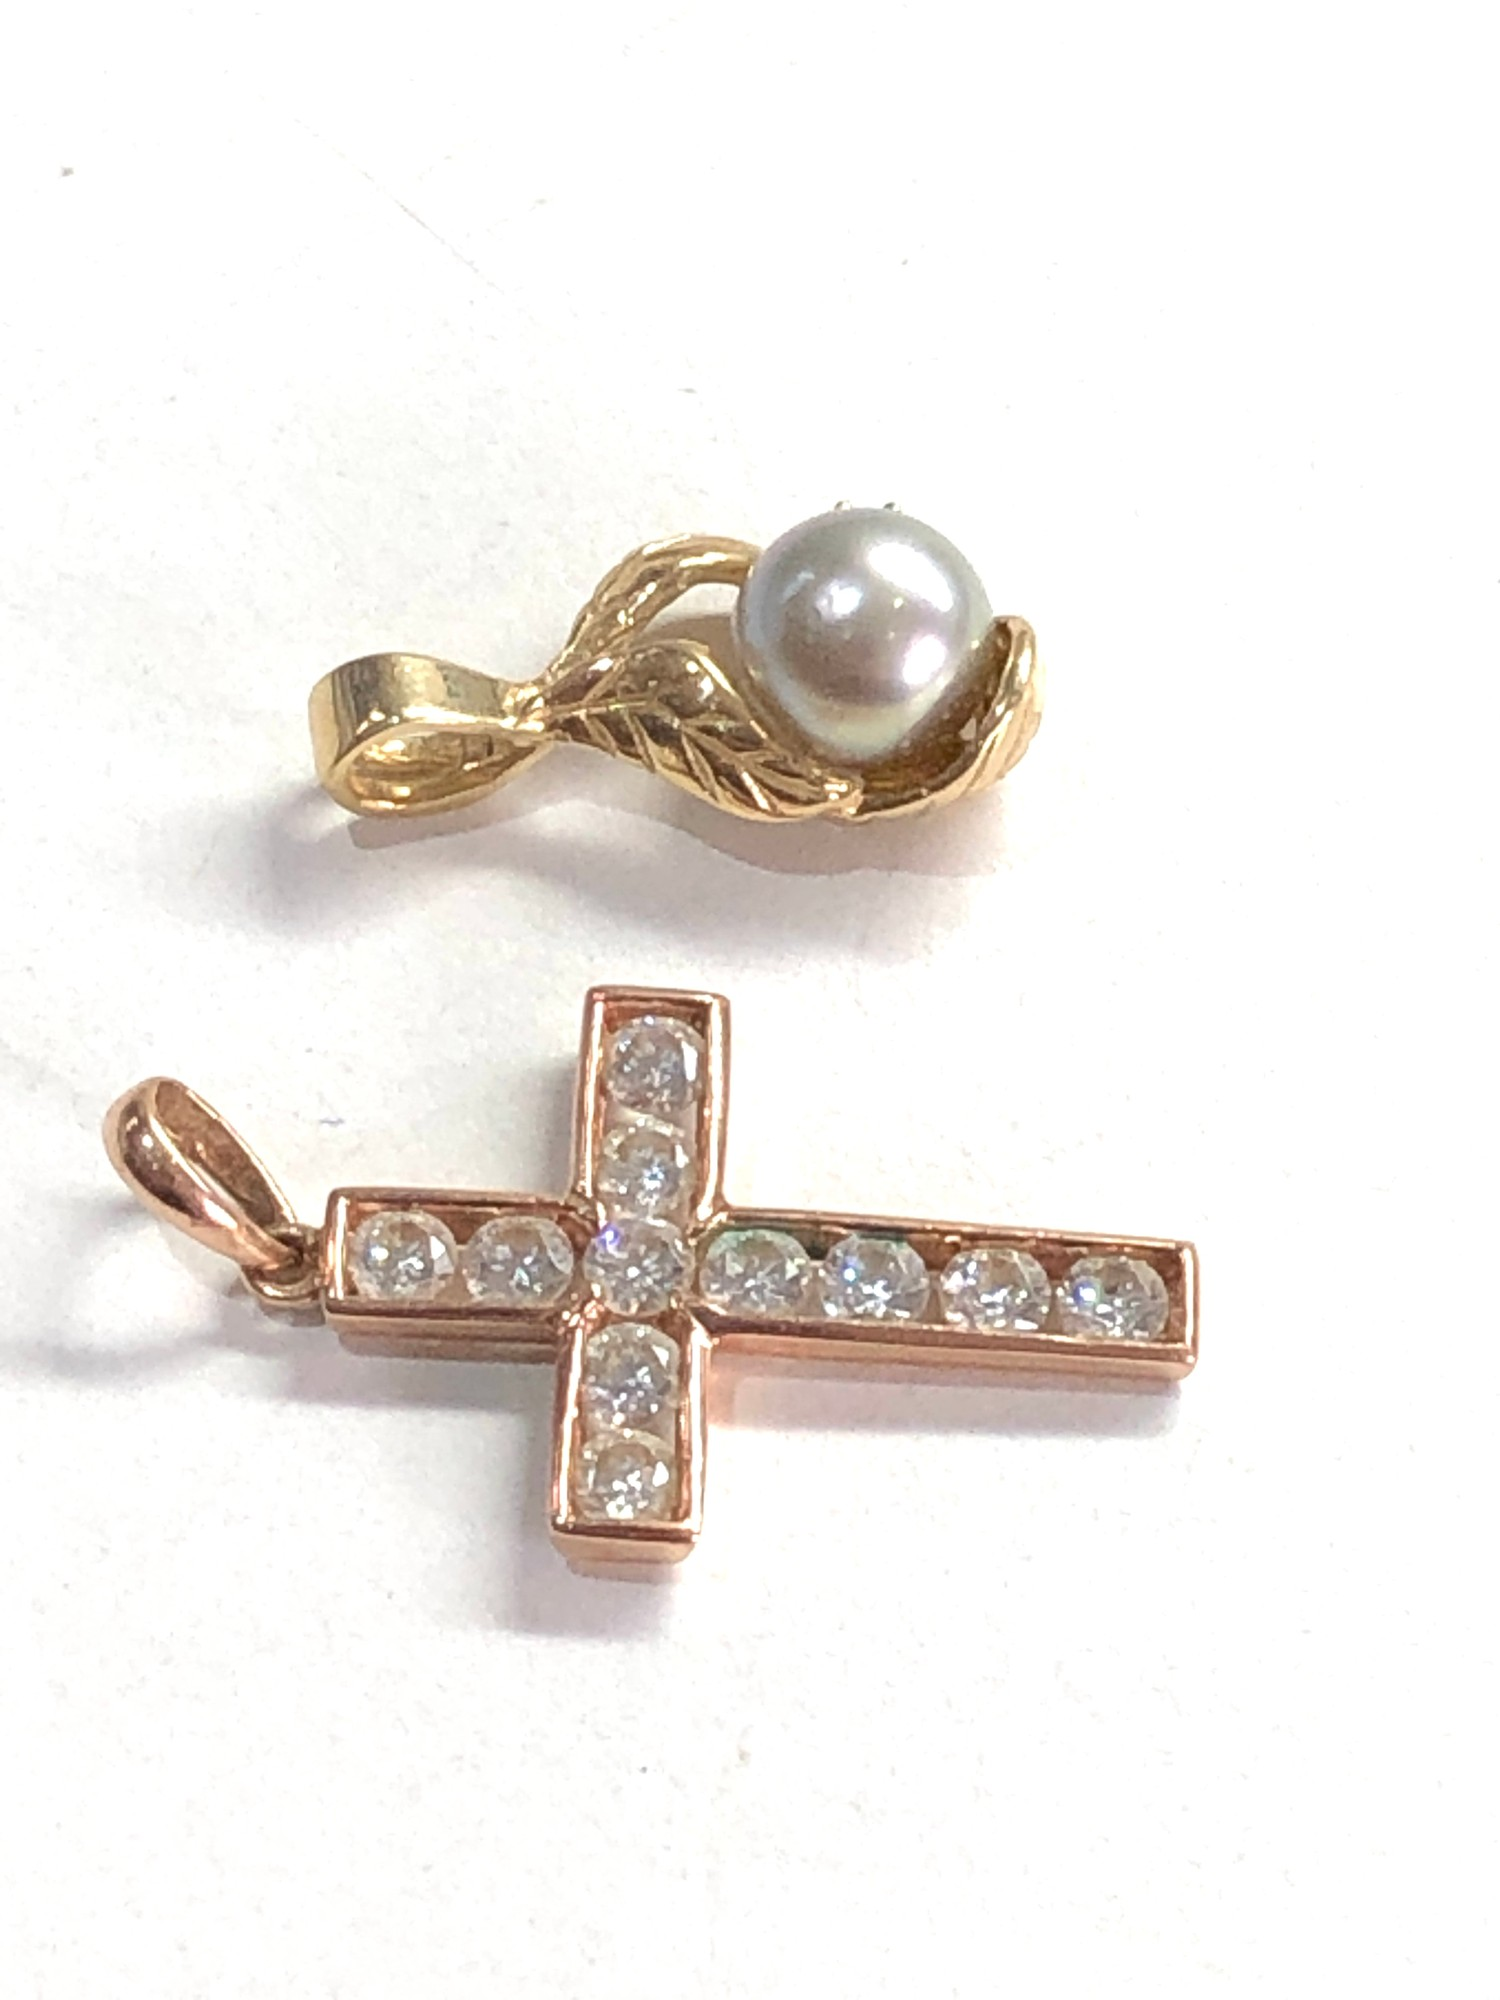 2 x 14ct gold diamond and pearl pendant and gemstone cross pendant 3.9g - Image 2 of 2